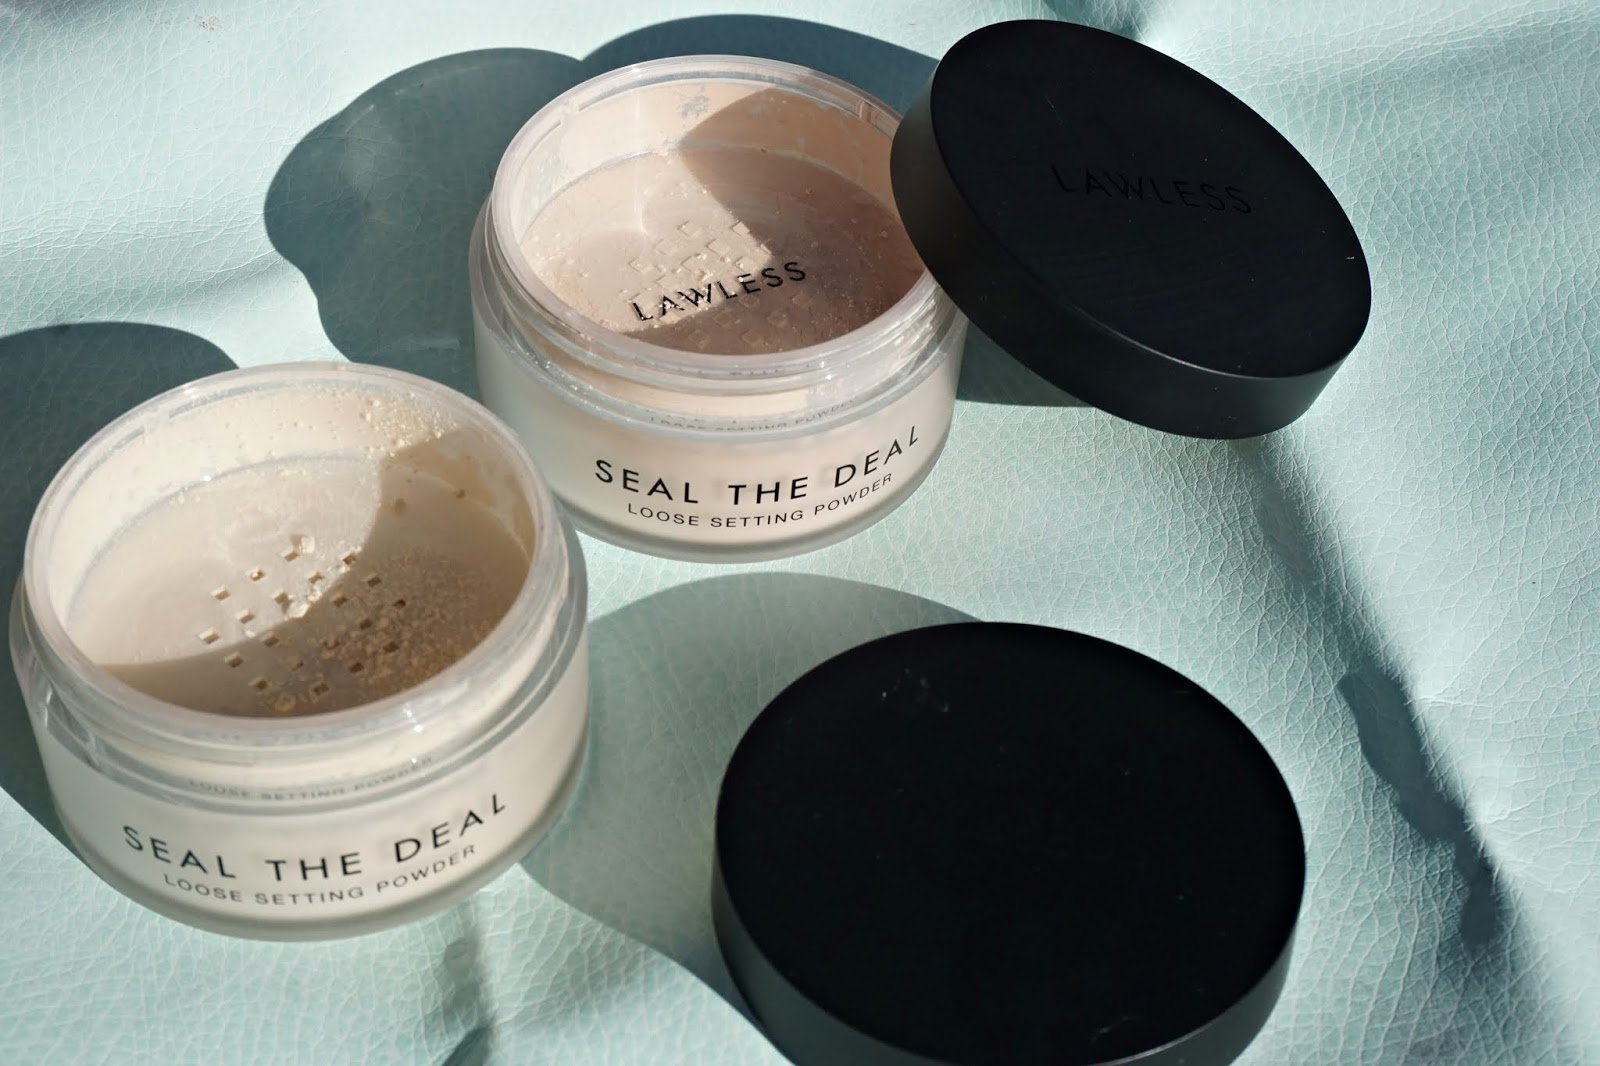 lawless seal the deal powder swatches